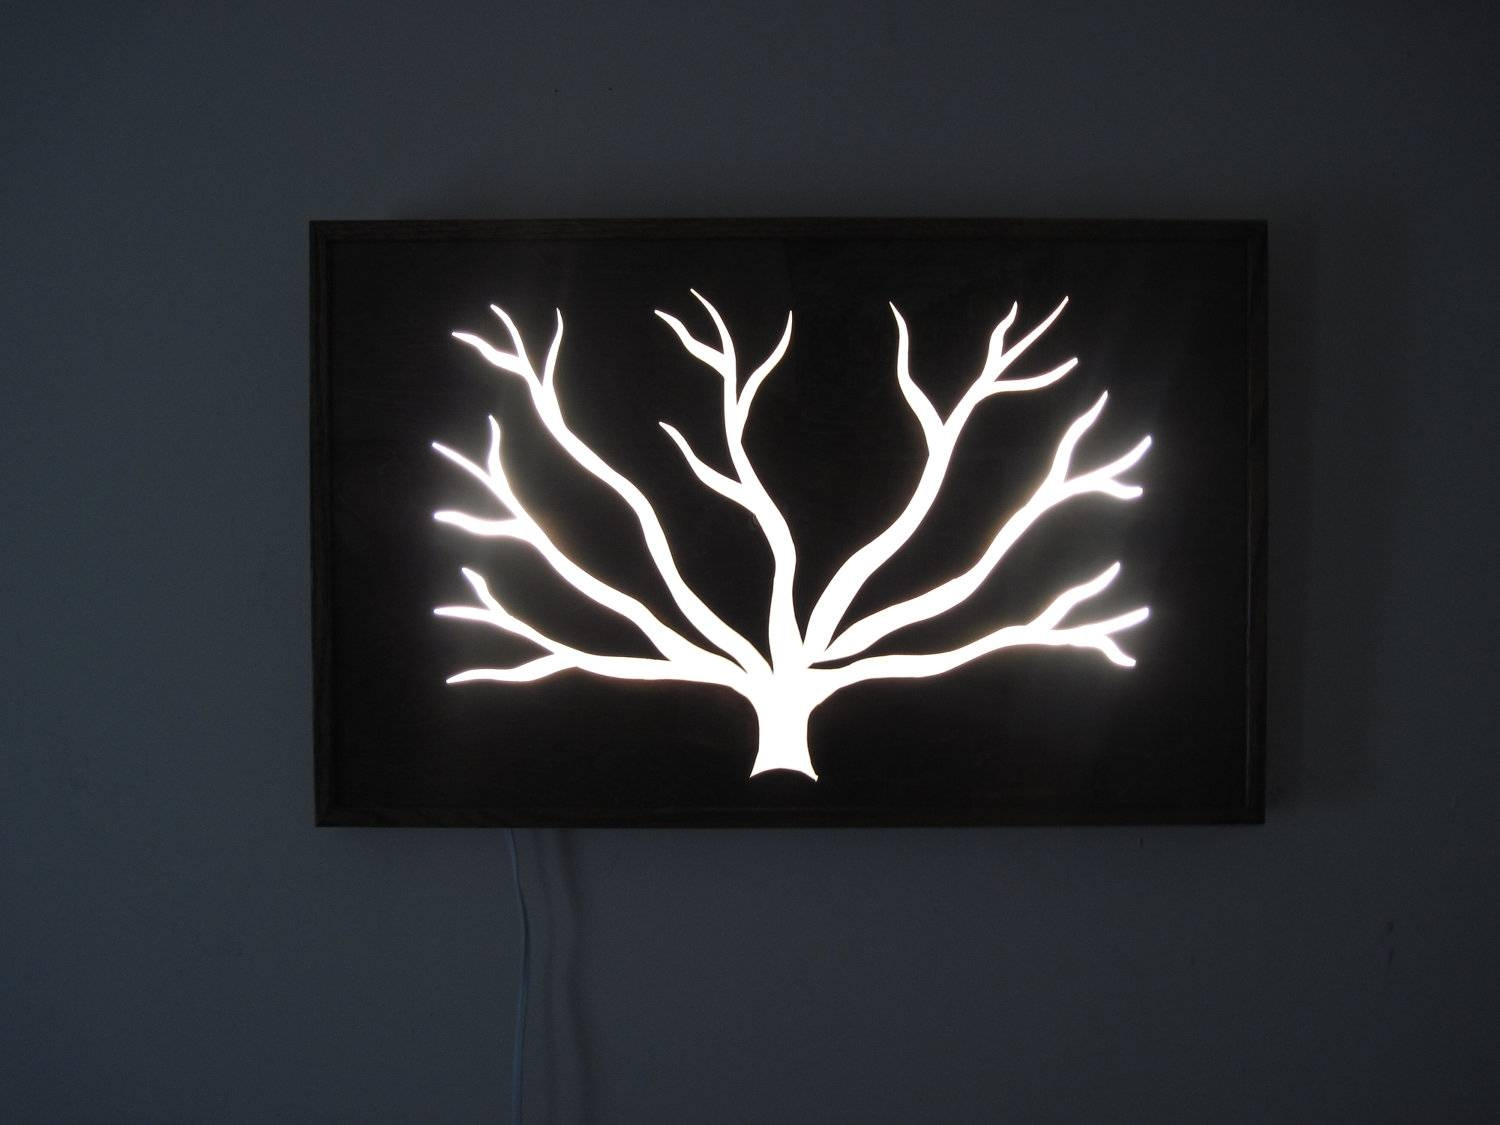 Wall Art Lights – 15 Best Decisions You Can Make In Regards To Regarding Recent Wall Art Lighting (View 18 of 20)